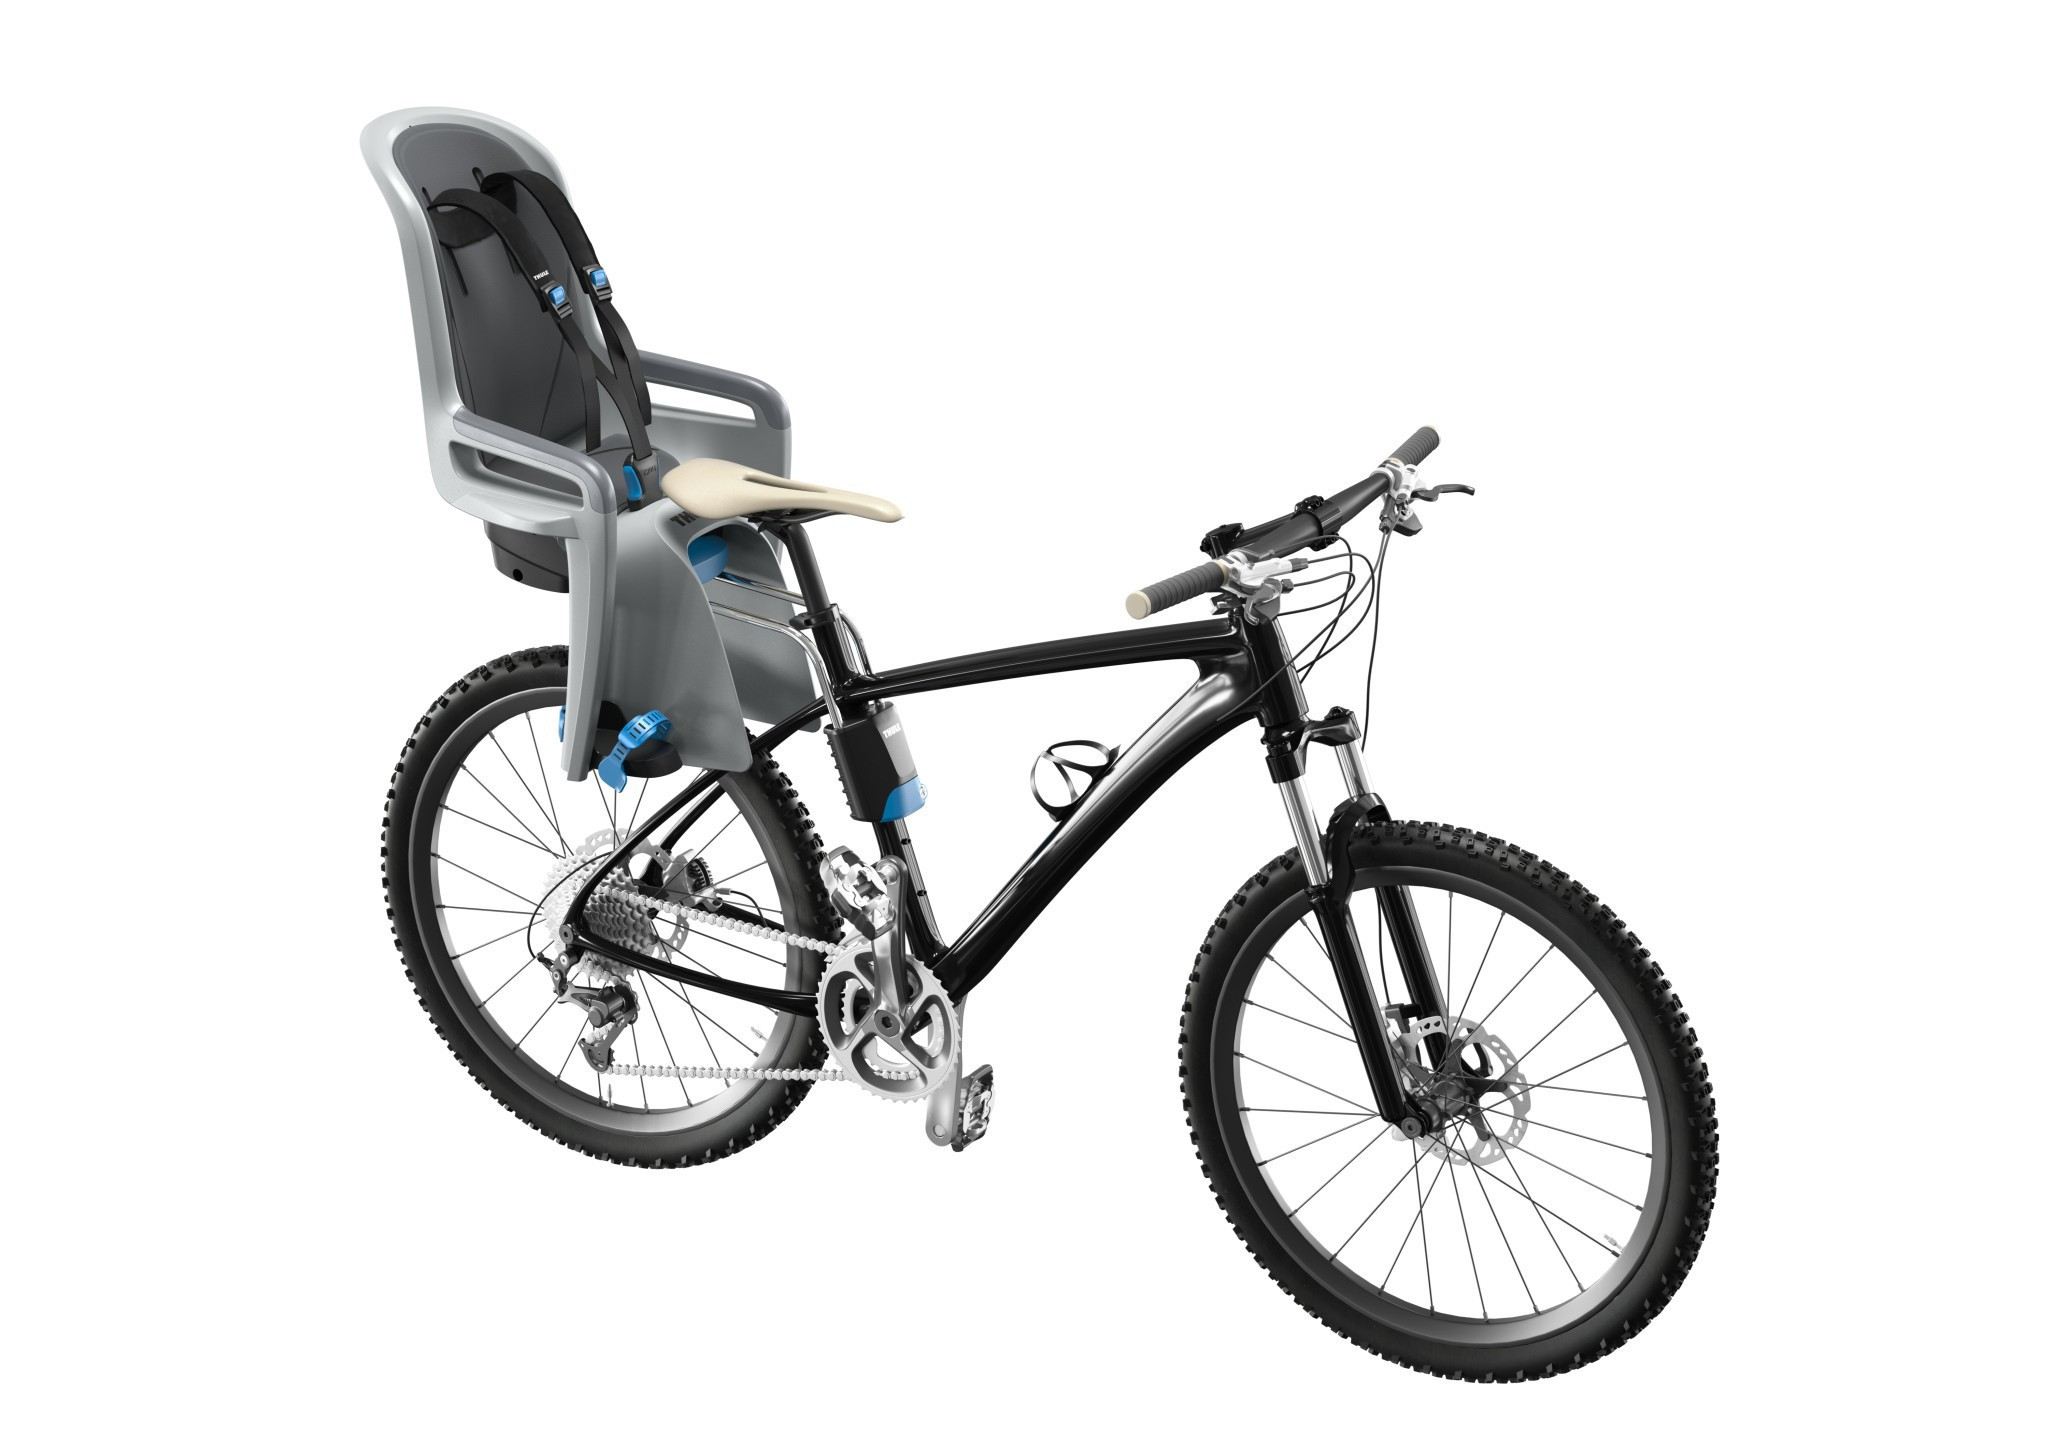 THULE - RideAlong - Child bike seat